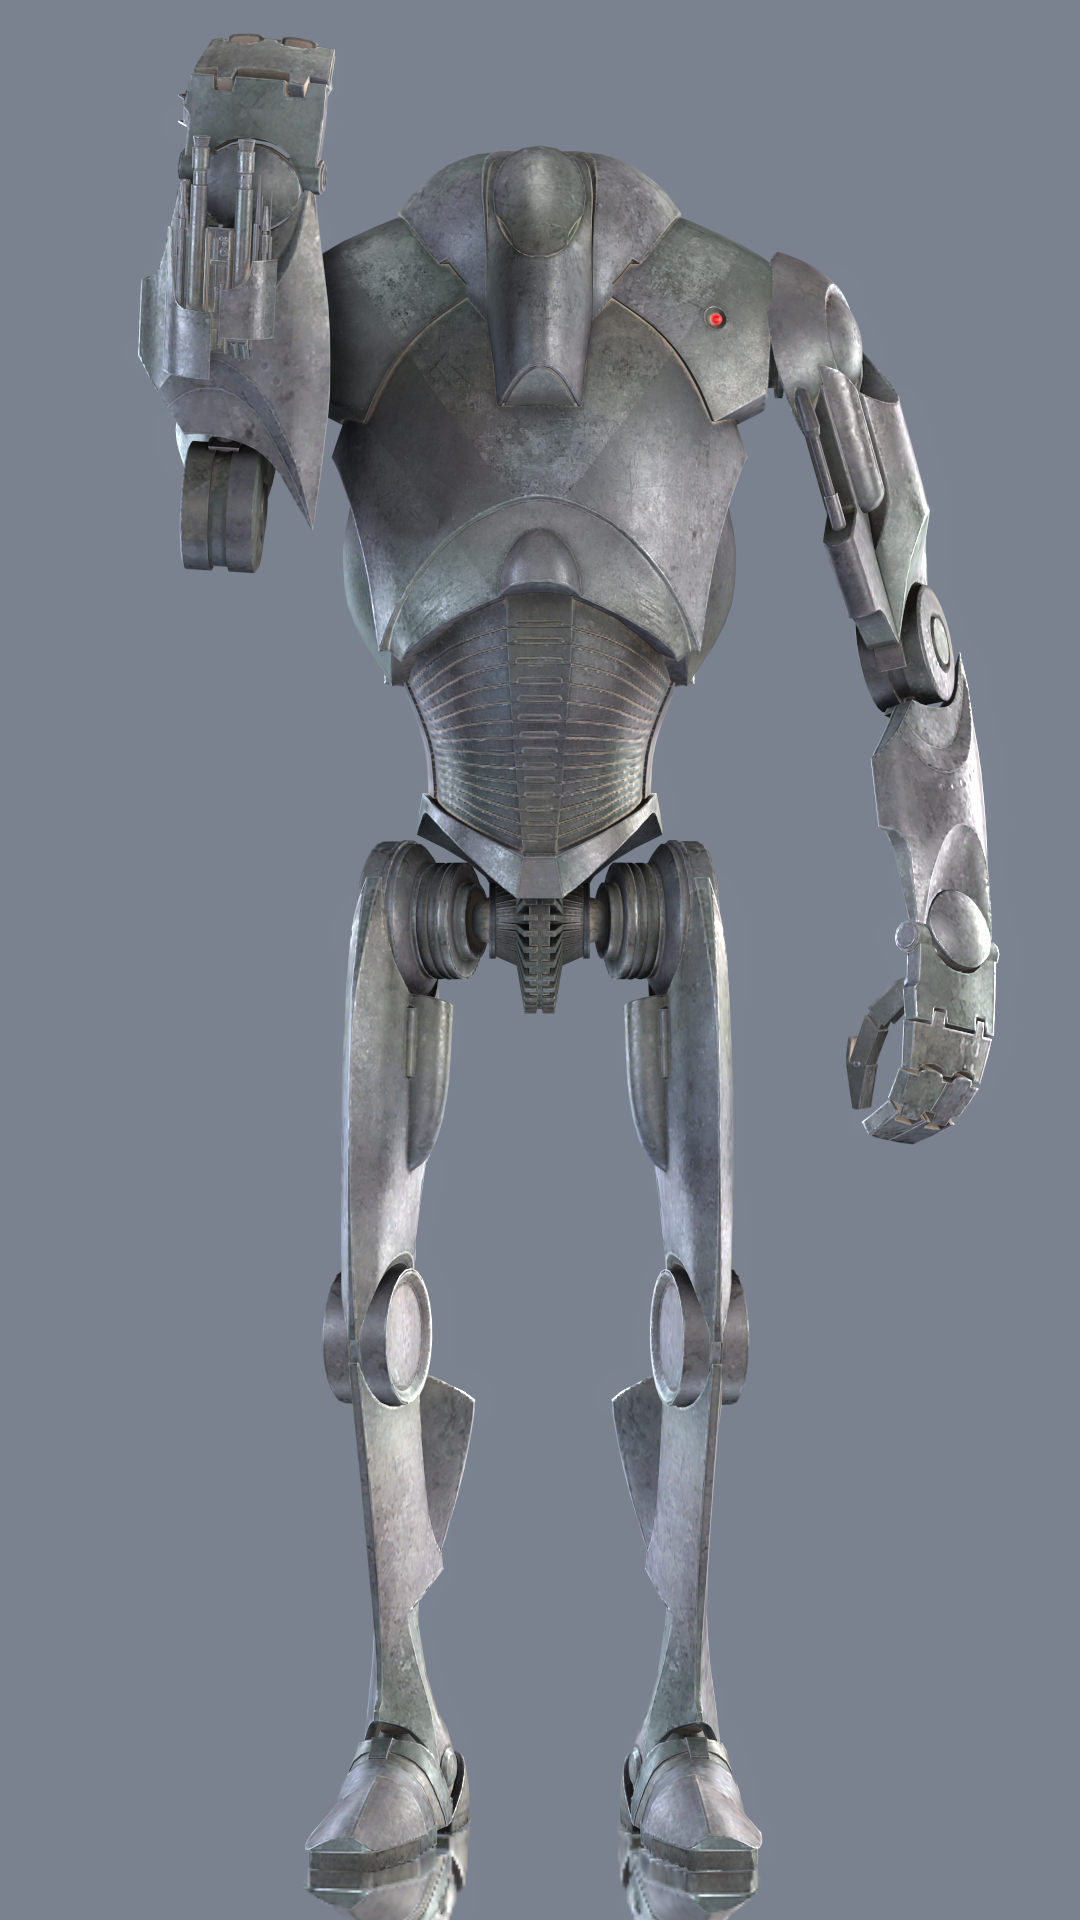 droid wallpaper download